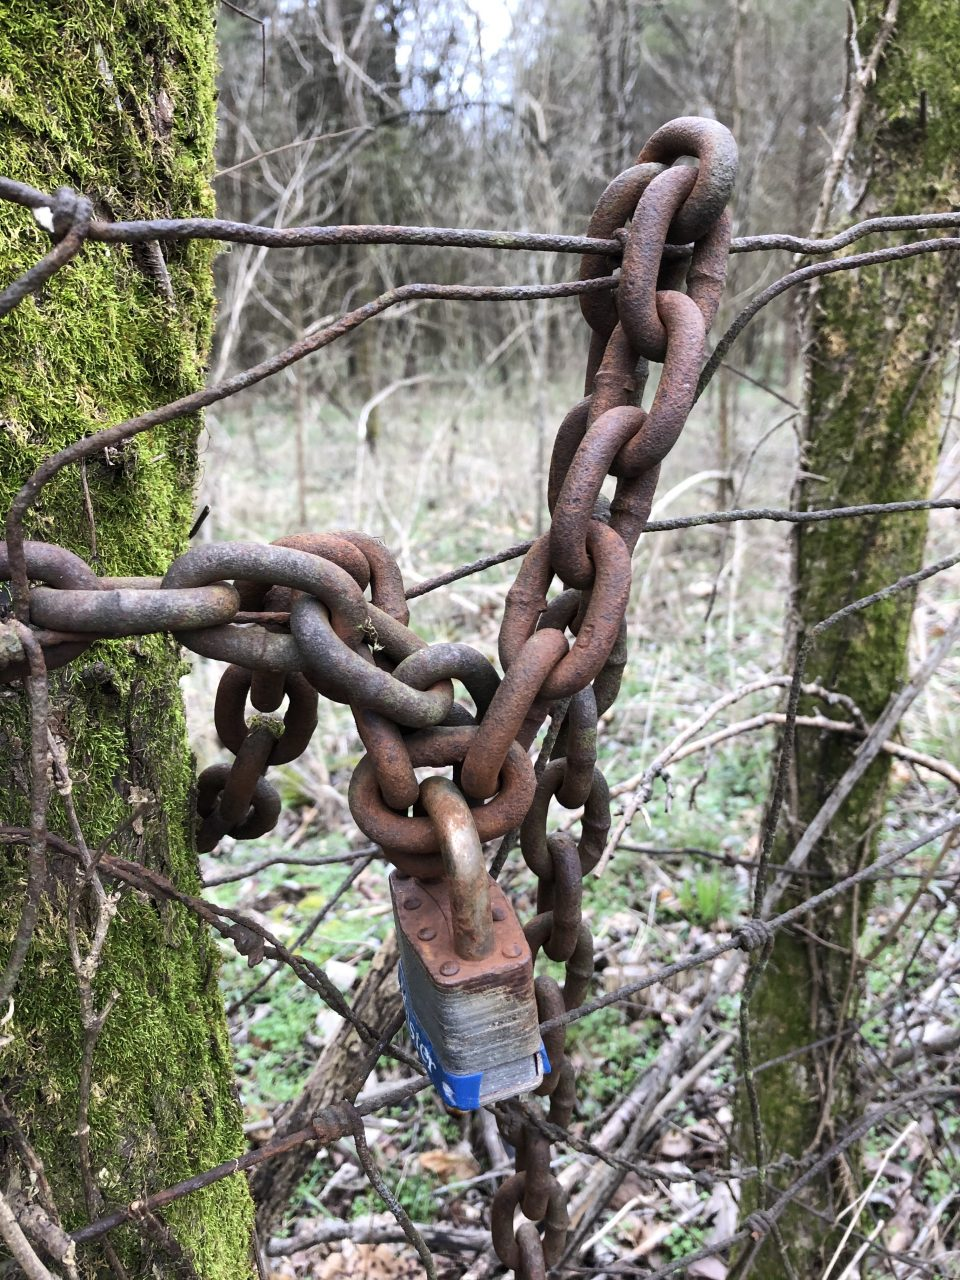 Along the way I found this rusty old chain hanging on a wire fence.